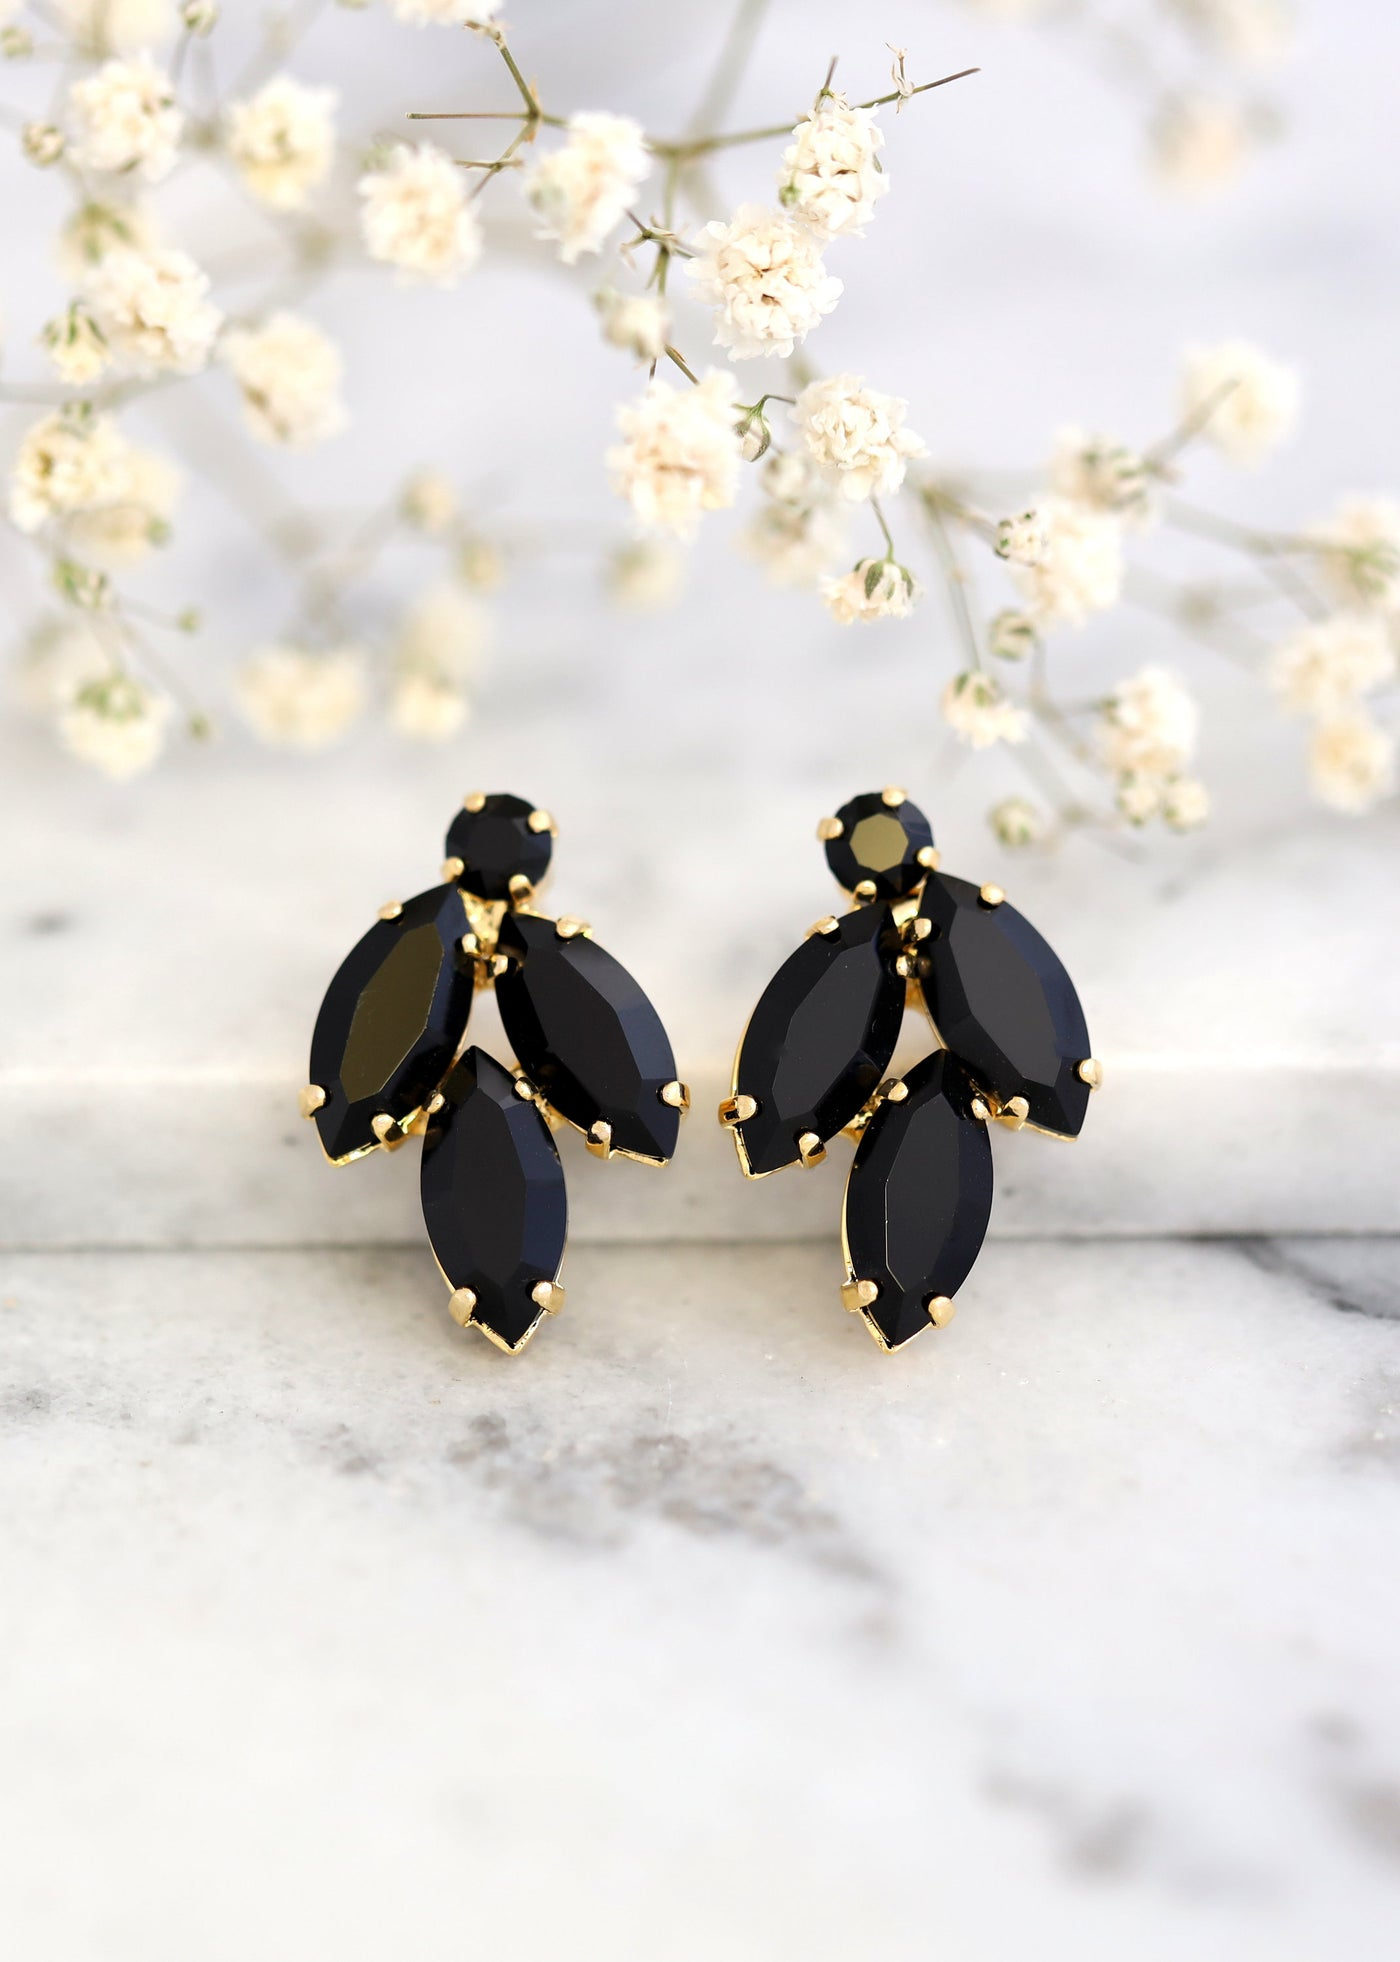 Black Clip On Earrings, Bridal Black Crystal Earrings, Swarovski Black Earrings, Clip On Earrings, Bridesmaids Clip Ons Earrings